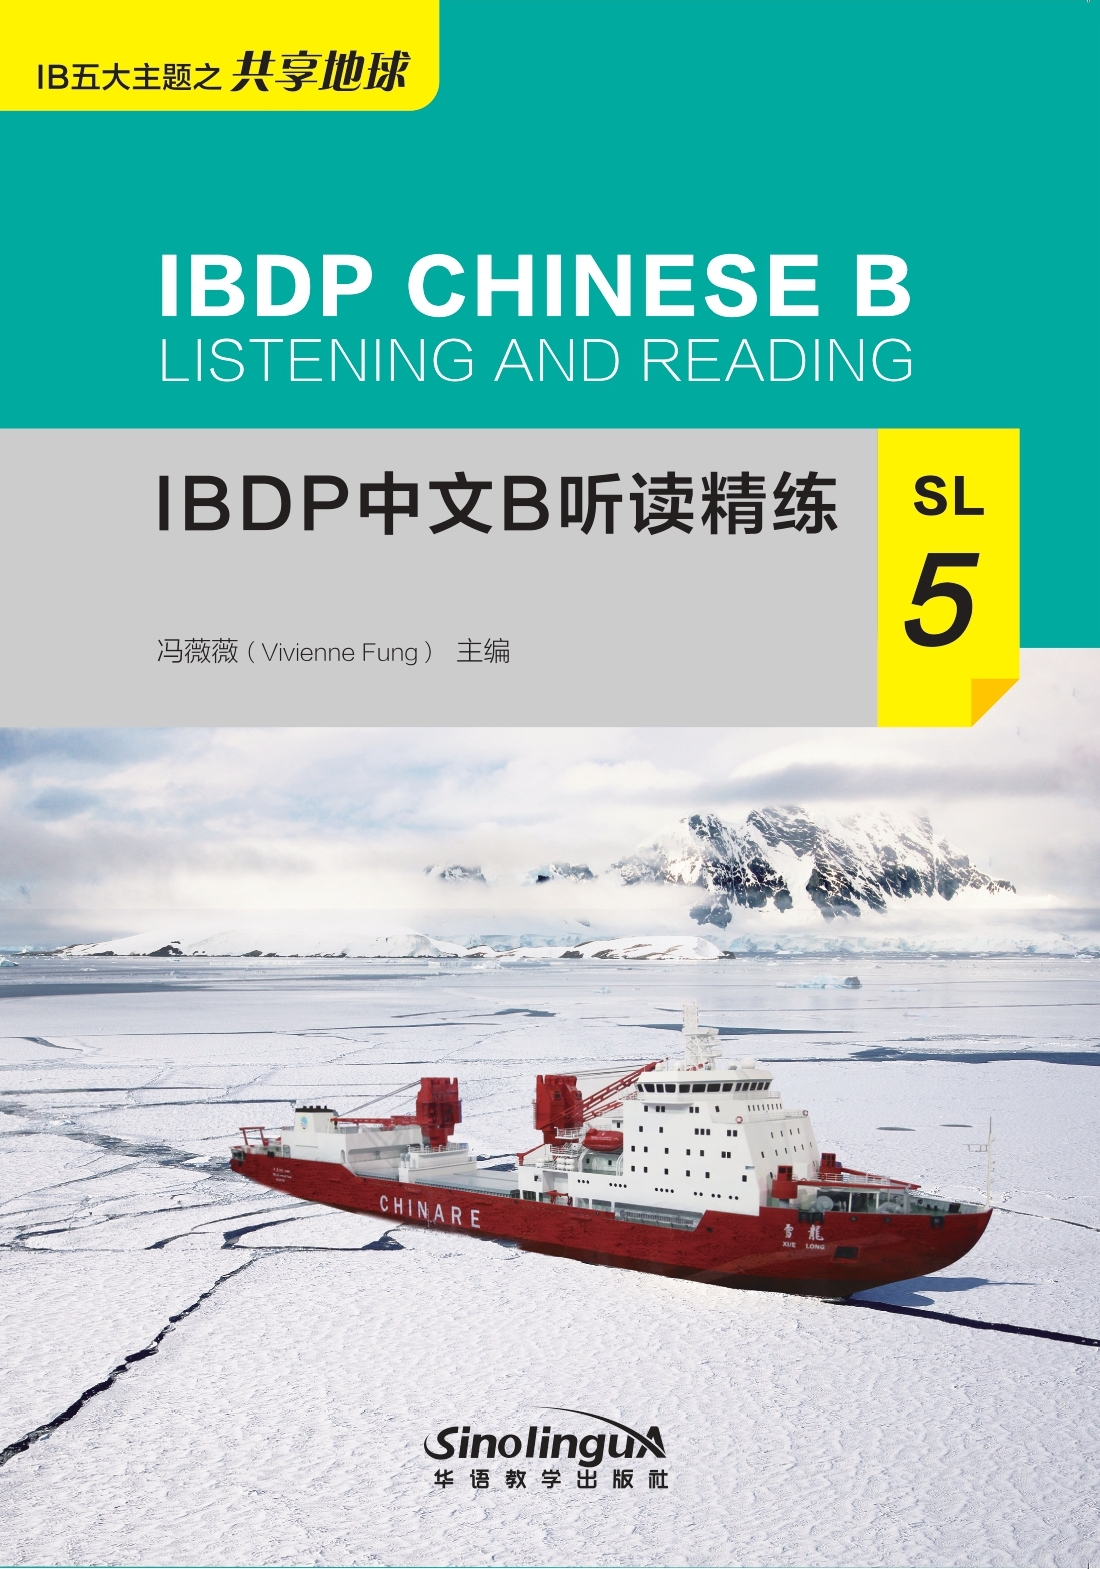 IBDP中文B听读精练SL 5  IBDP Chinese B Listening and Reading SL 5